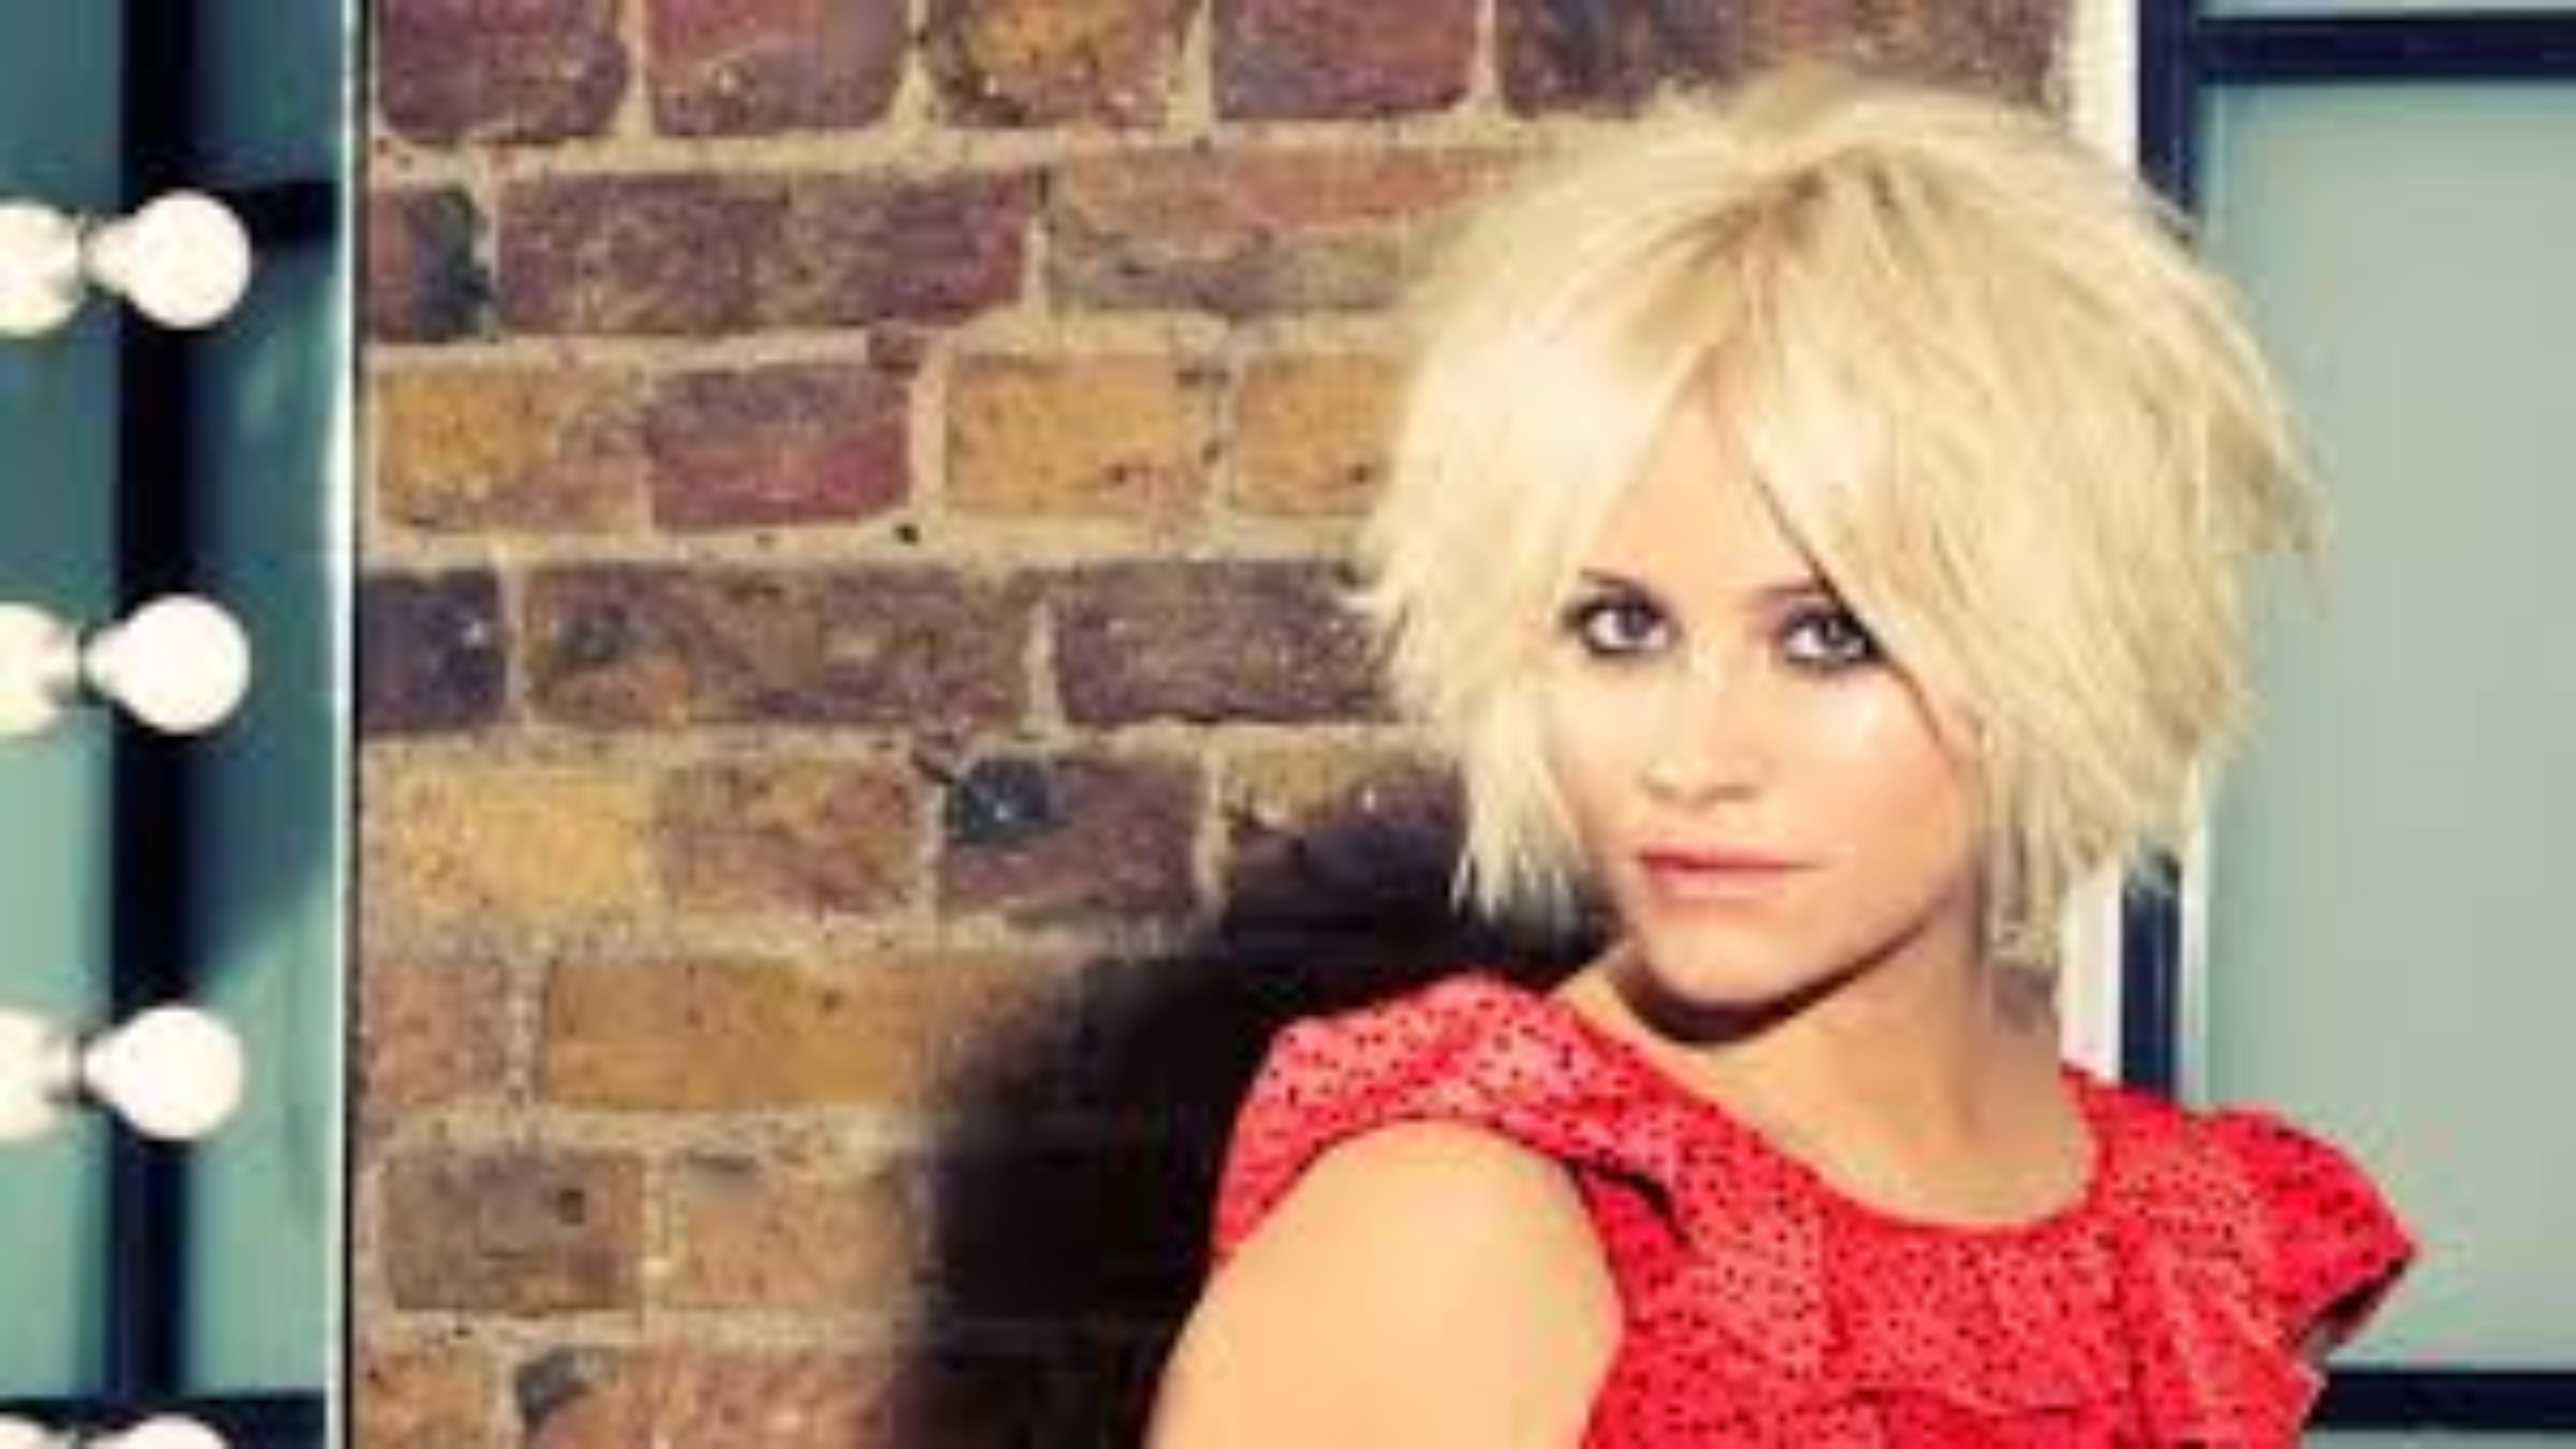 Cool Pixie Lott Wallpaper Images Picture Download Hd Photos